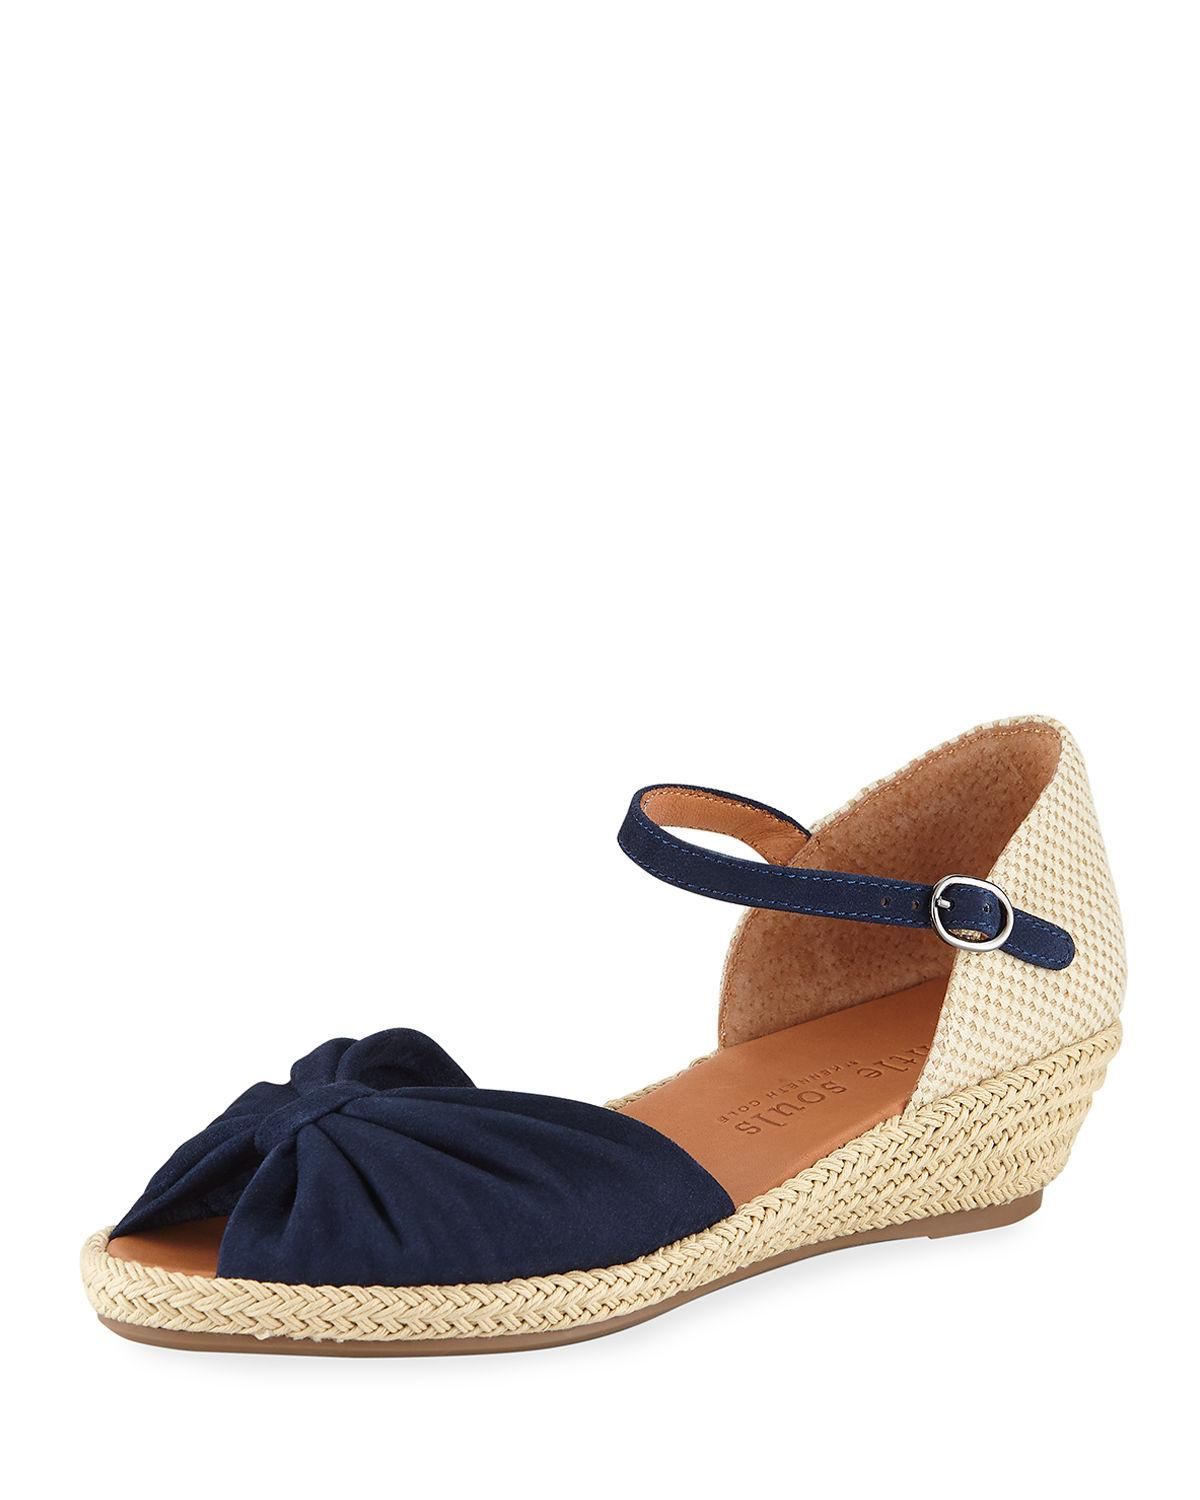 7ea4a0be878 By Kenneth Cole Lucille Espadrille Wedge Sandal in Navy Suede